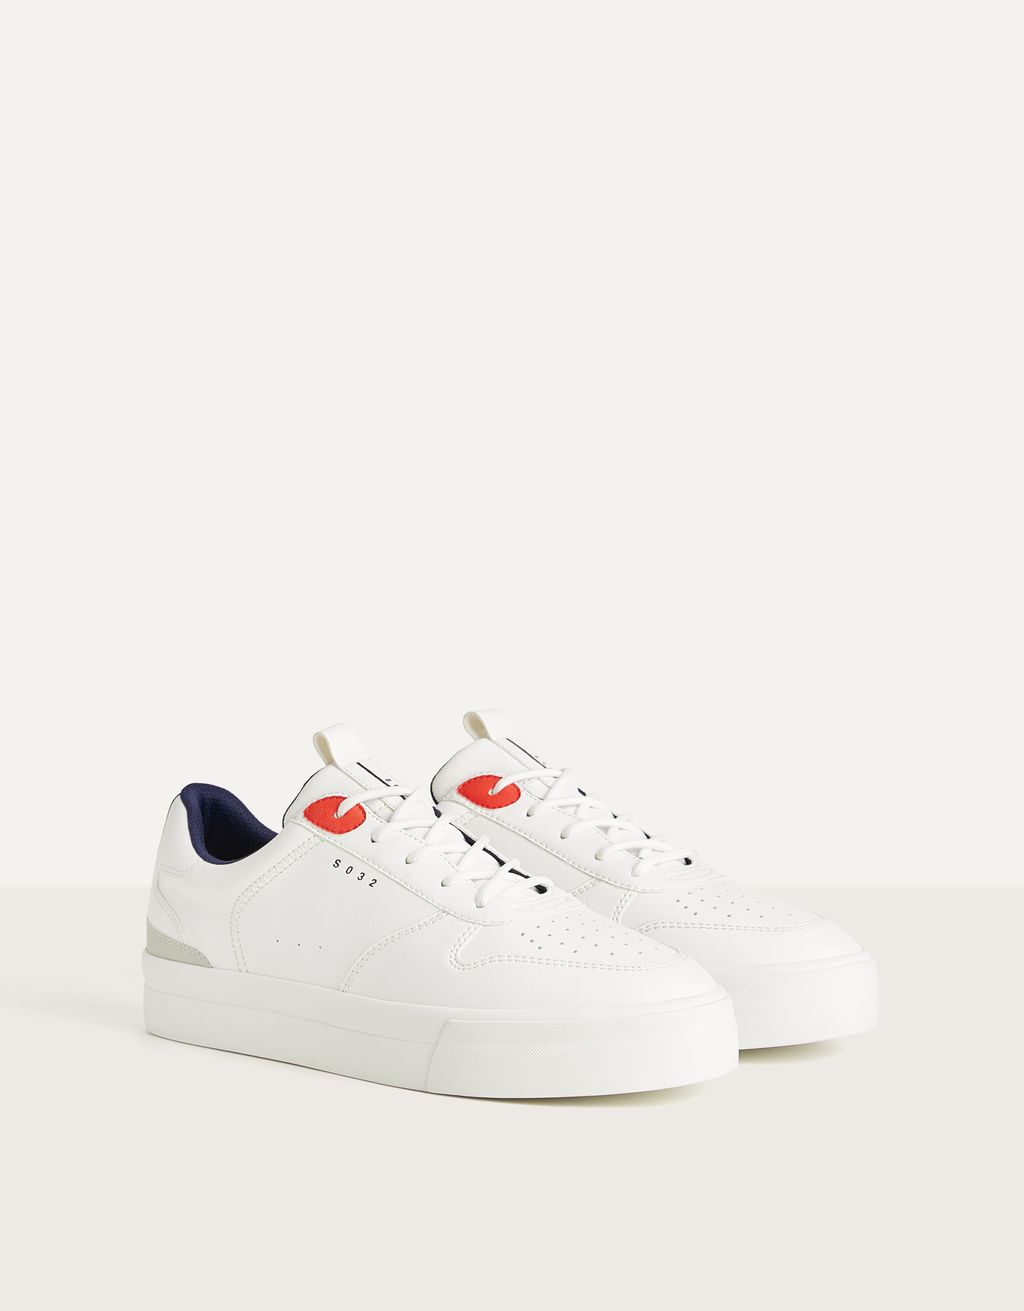 Men's trainers with colour detail